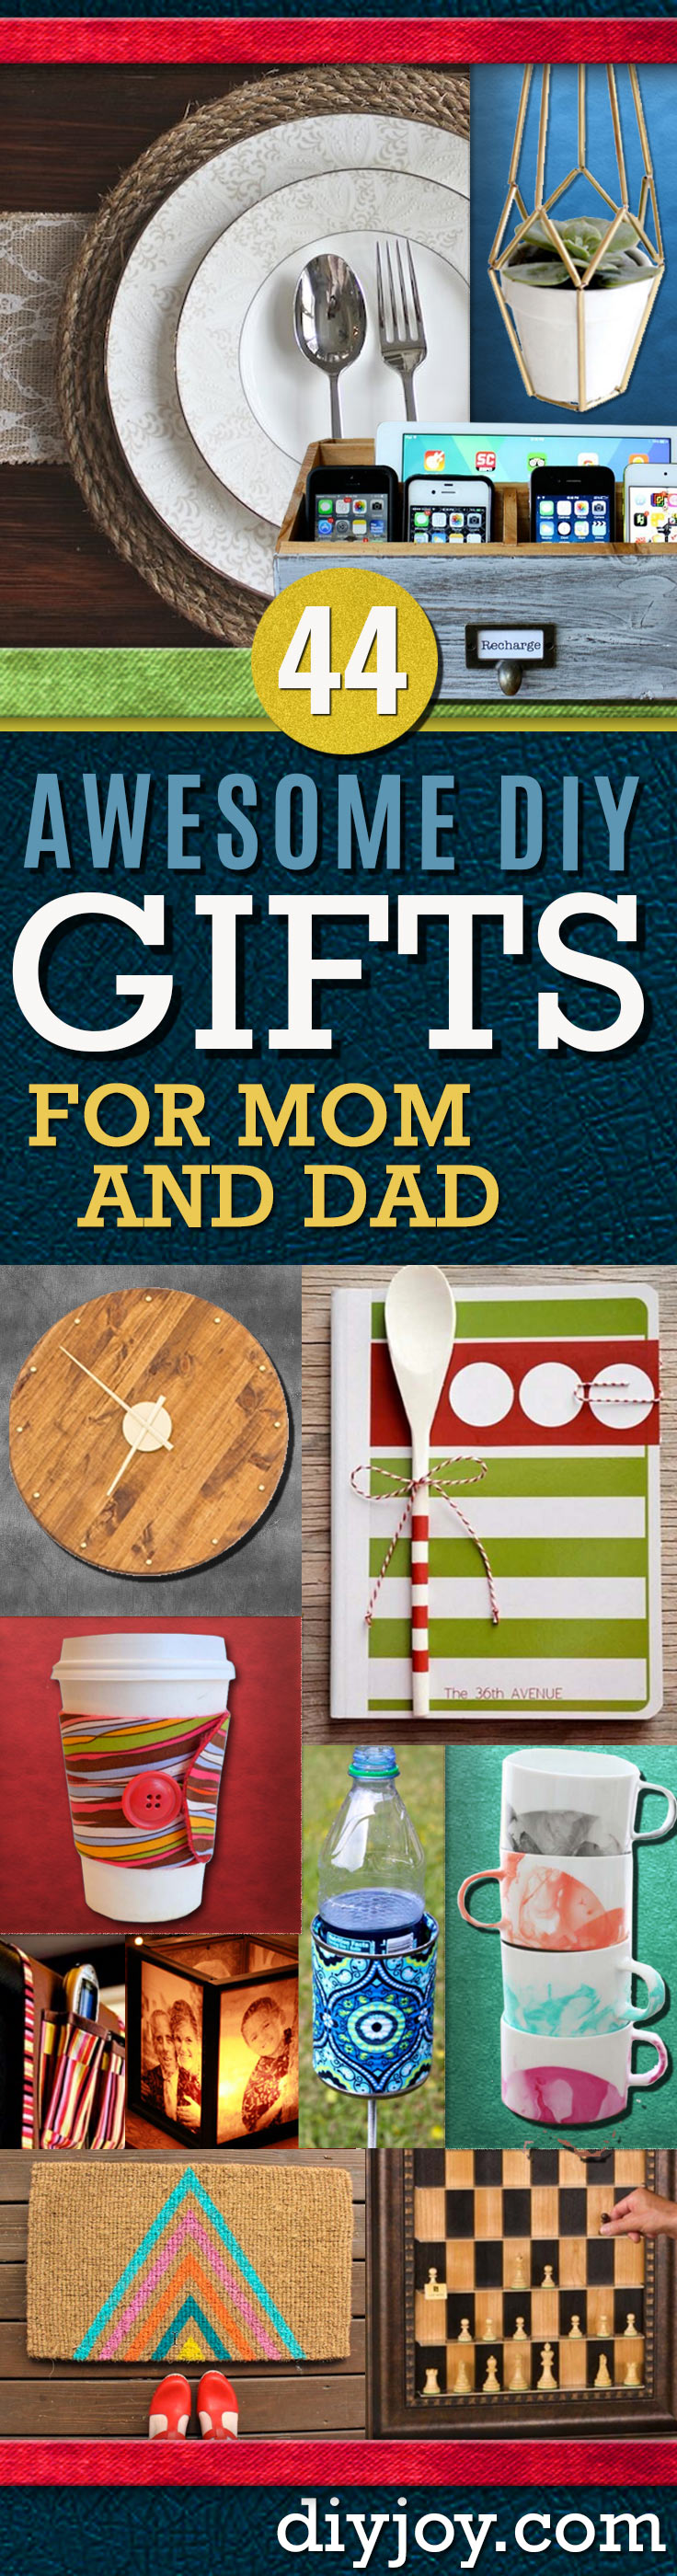 diy gifts for mom and dad homemade christmas gift ideas for your parents cool